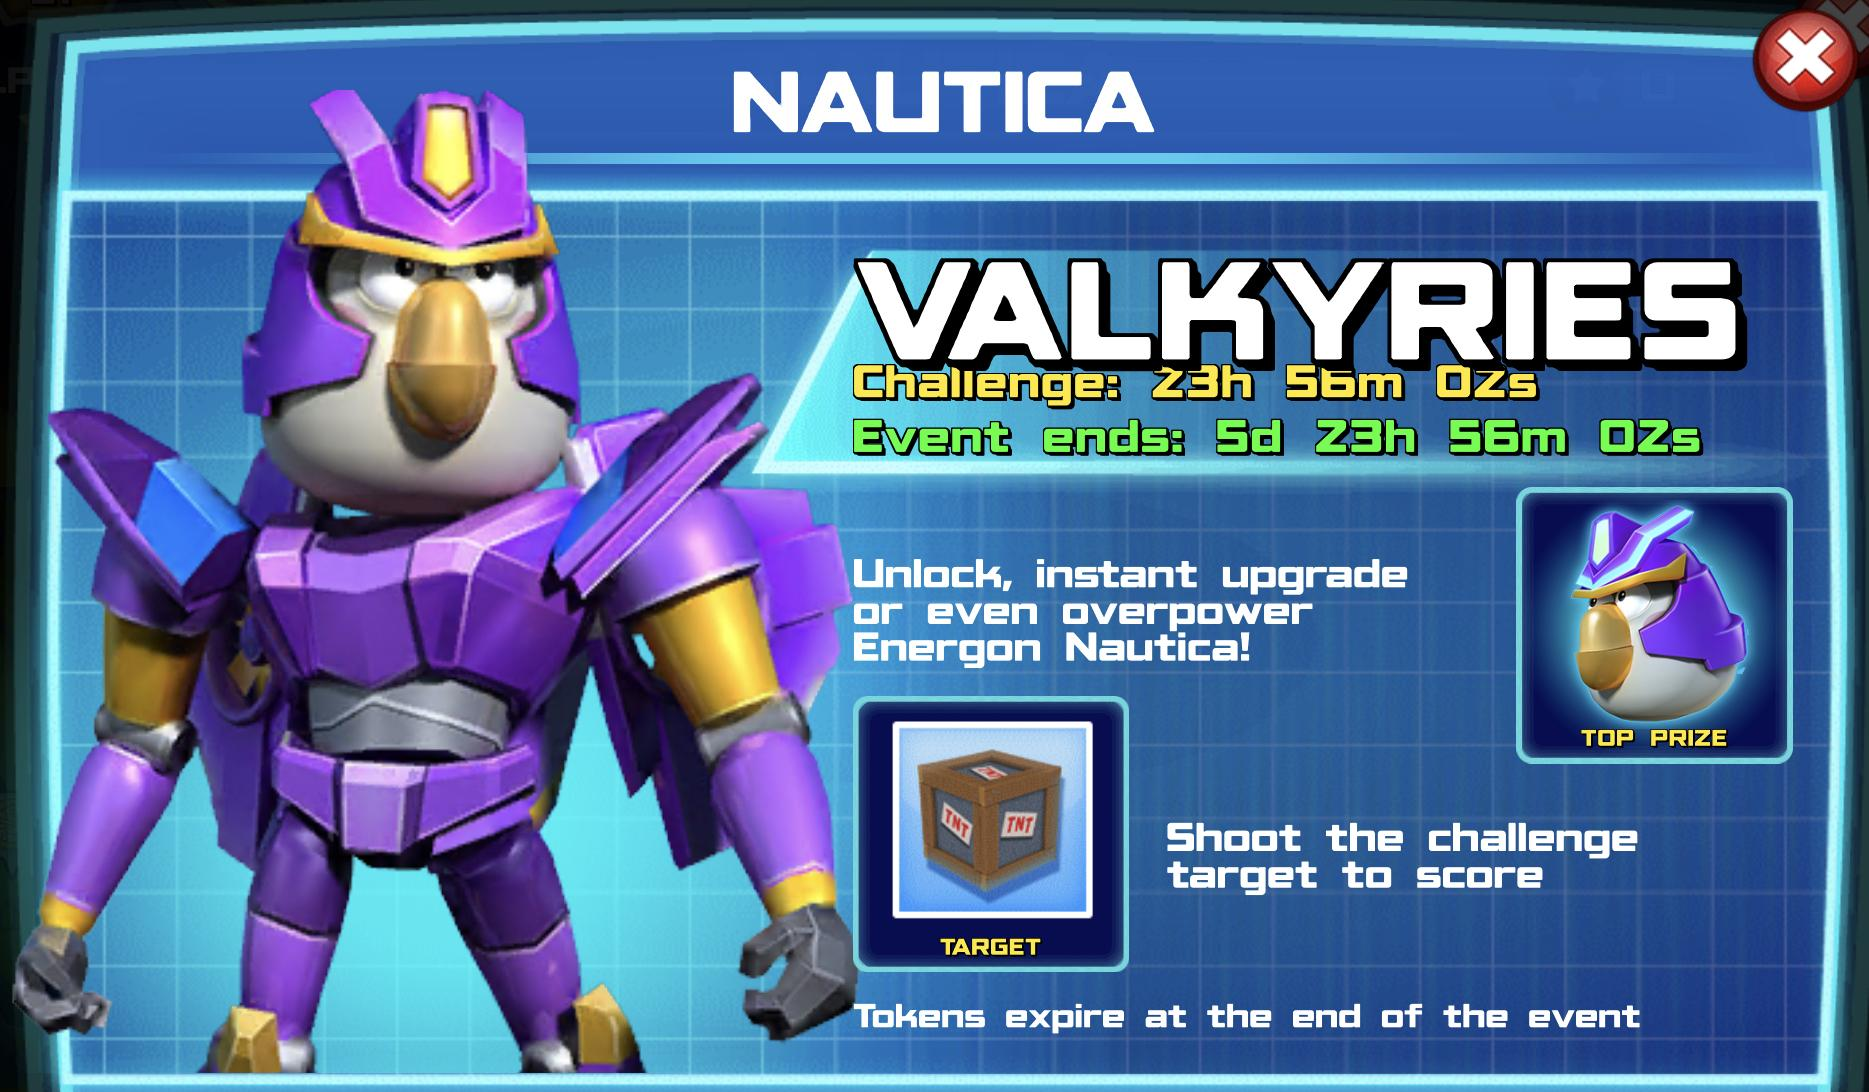 The event banner for Nautica